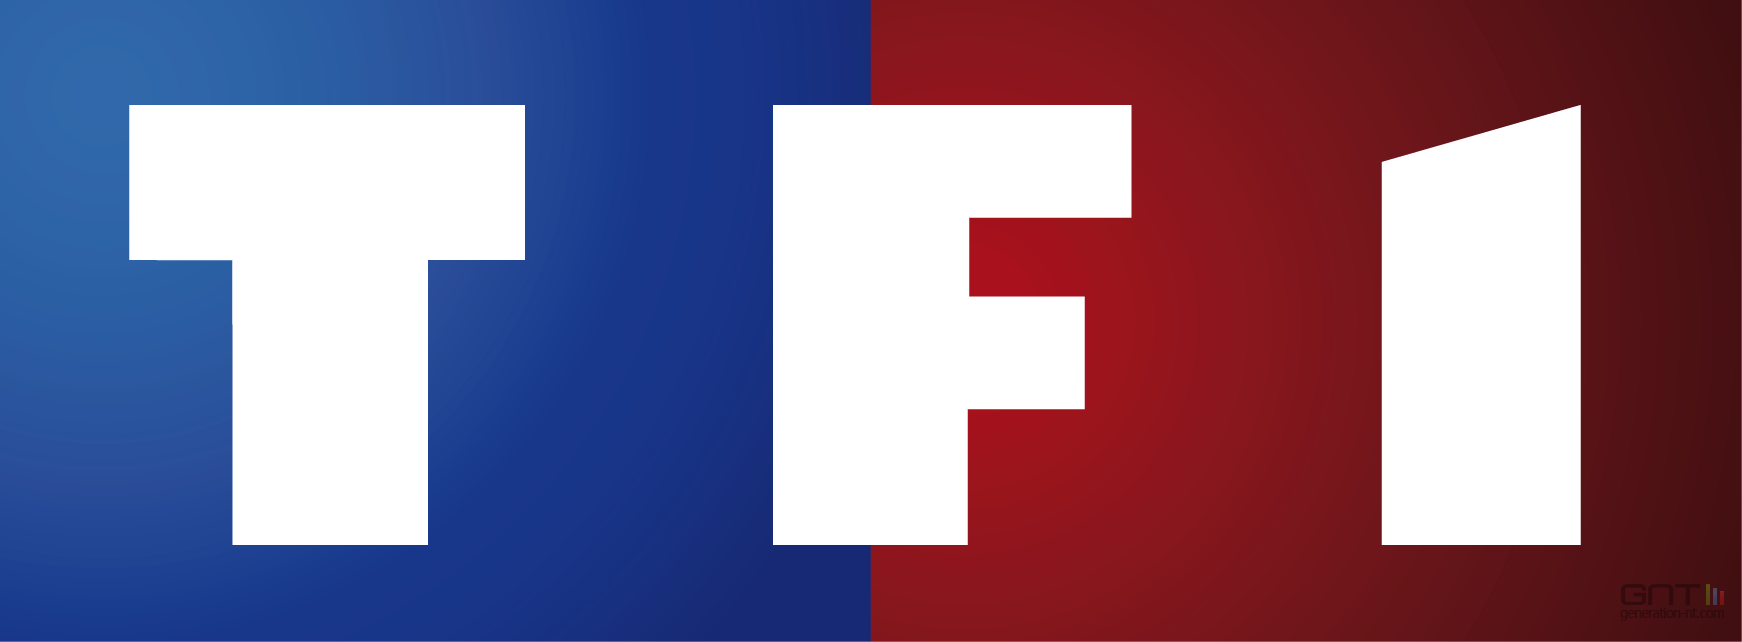 I think it's a great idea to have a group; TF1 logo - Runner's World